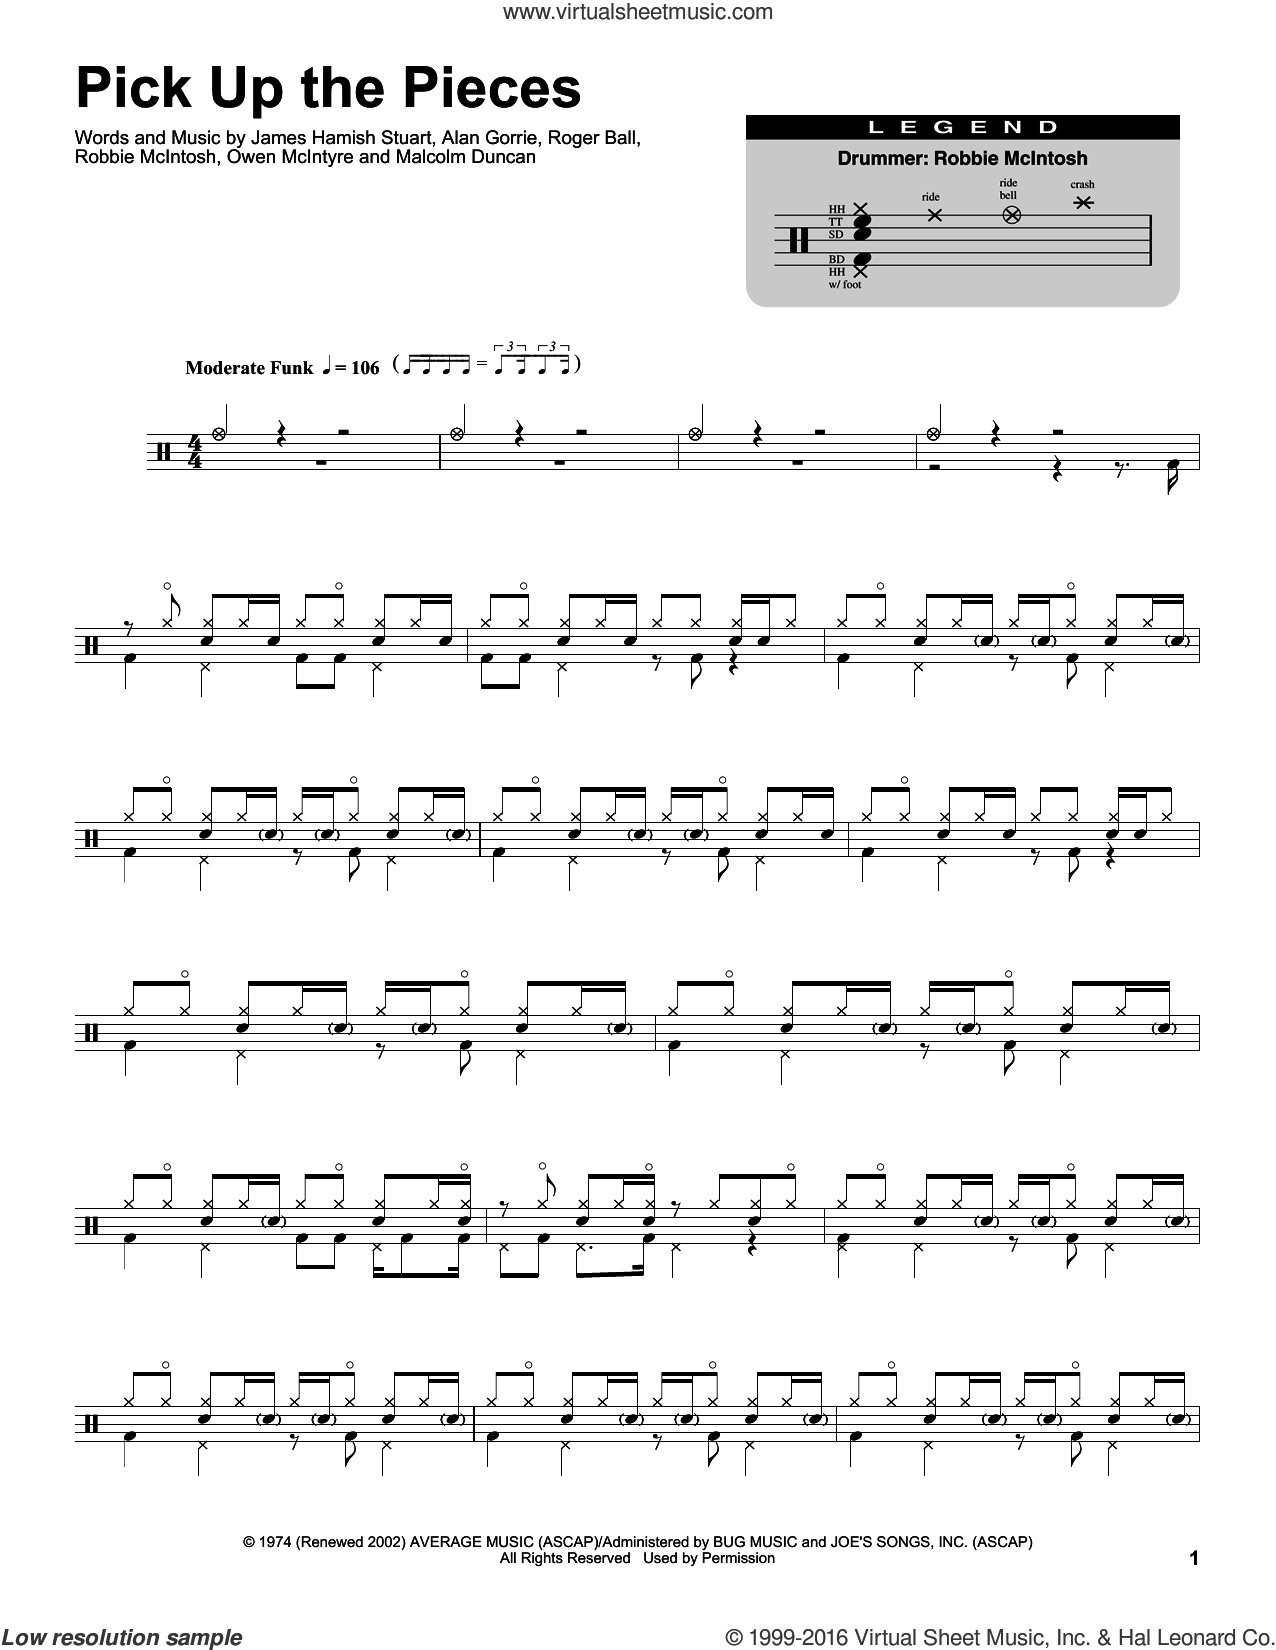 Pick up the pieces sheet music for drums by roger ball